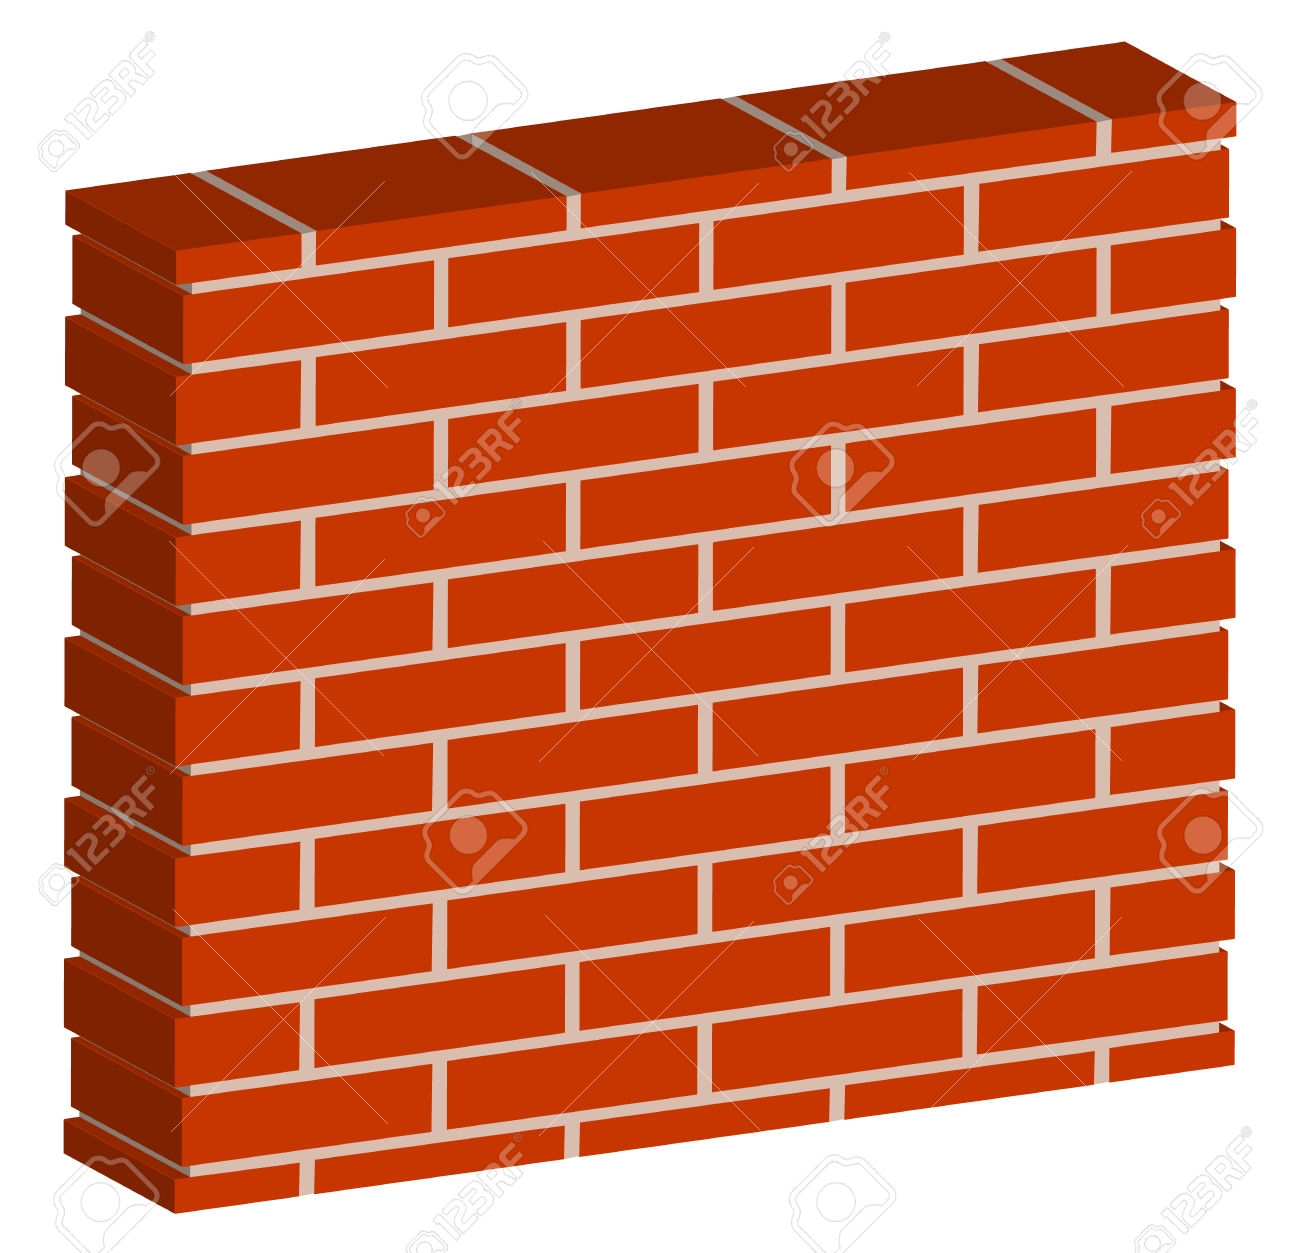 building brick wall clipart outdoor lighting landscape architects rh clipartstation com wall clipart free wall clipart background